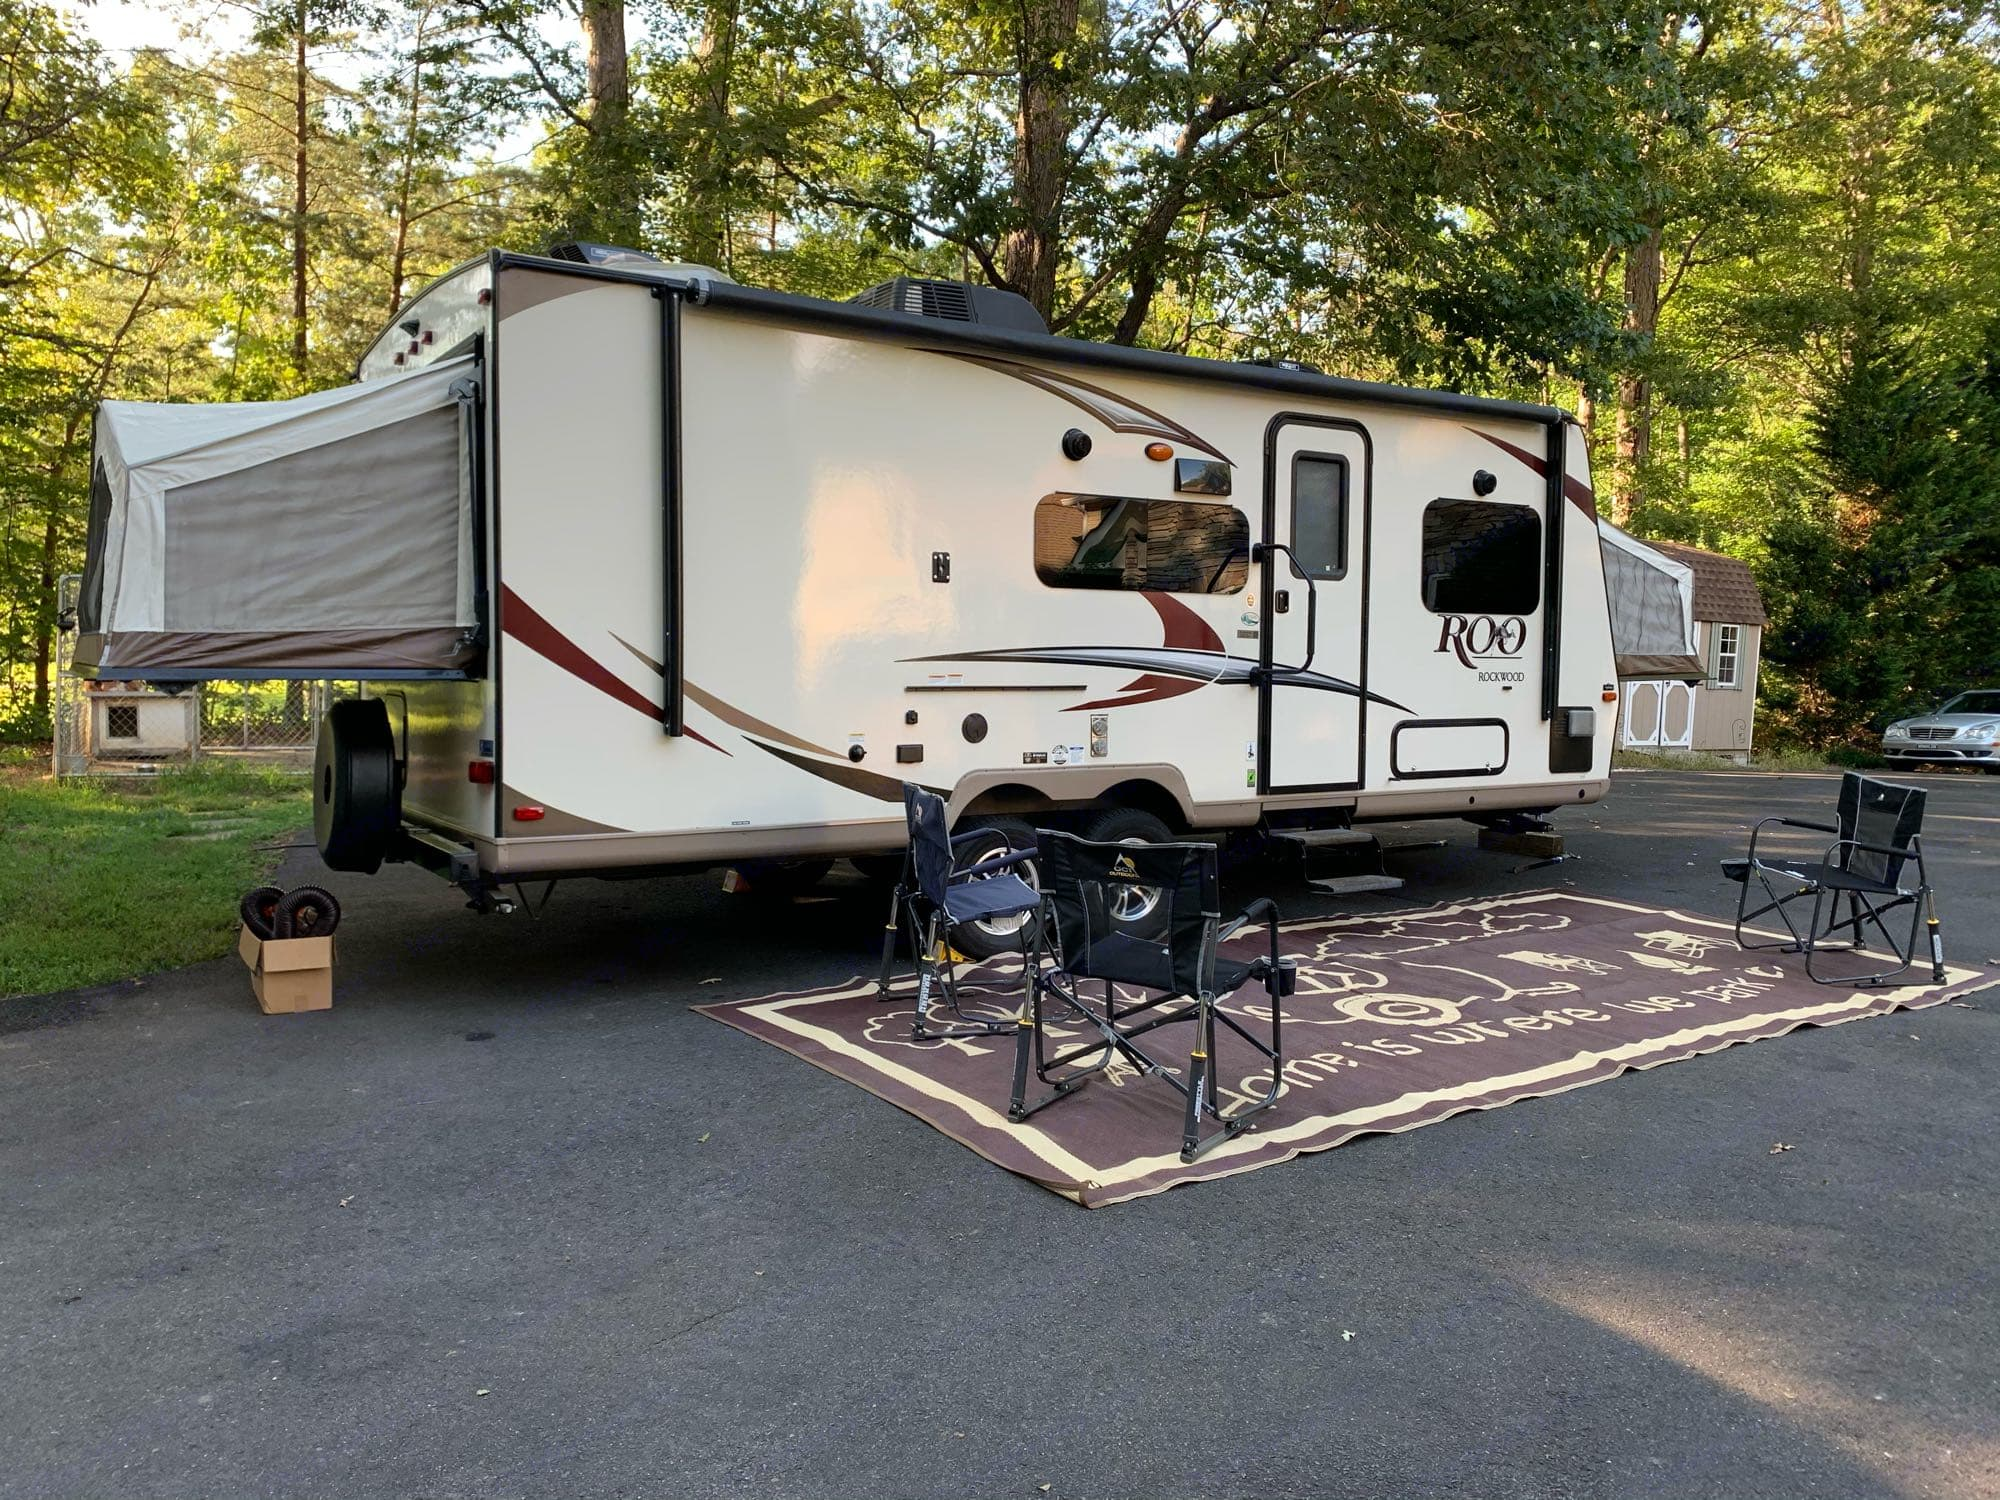 outdoor rug and 3 chairs. Forest River Rockwood Roo 233S 2018